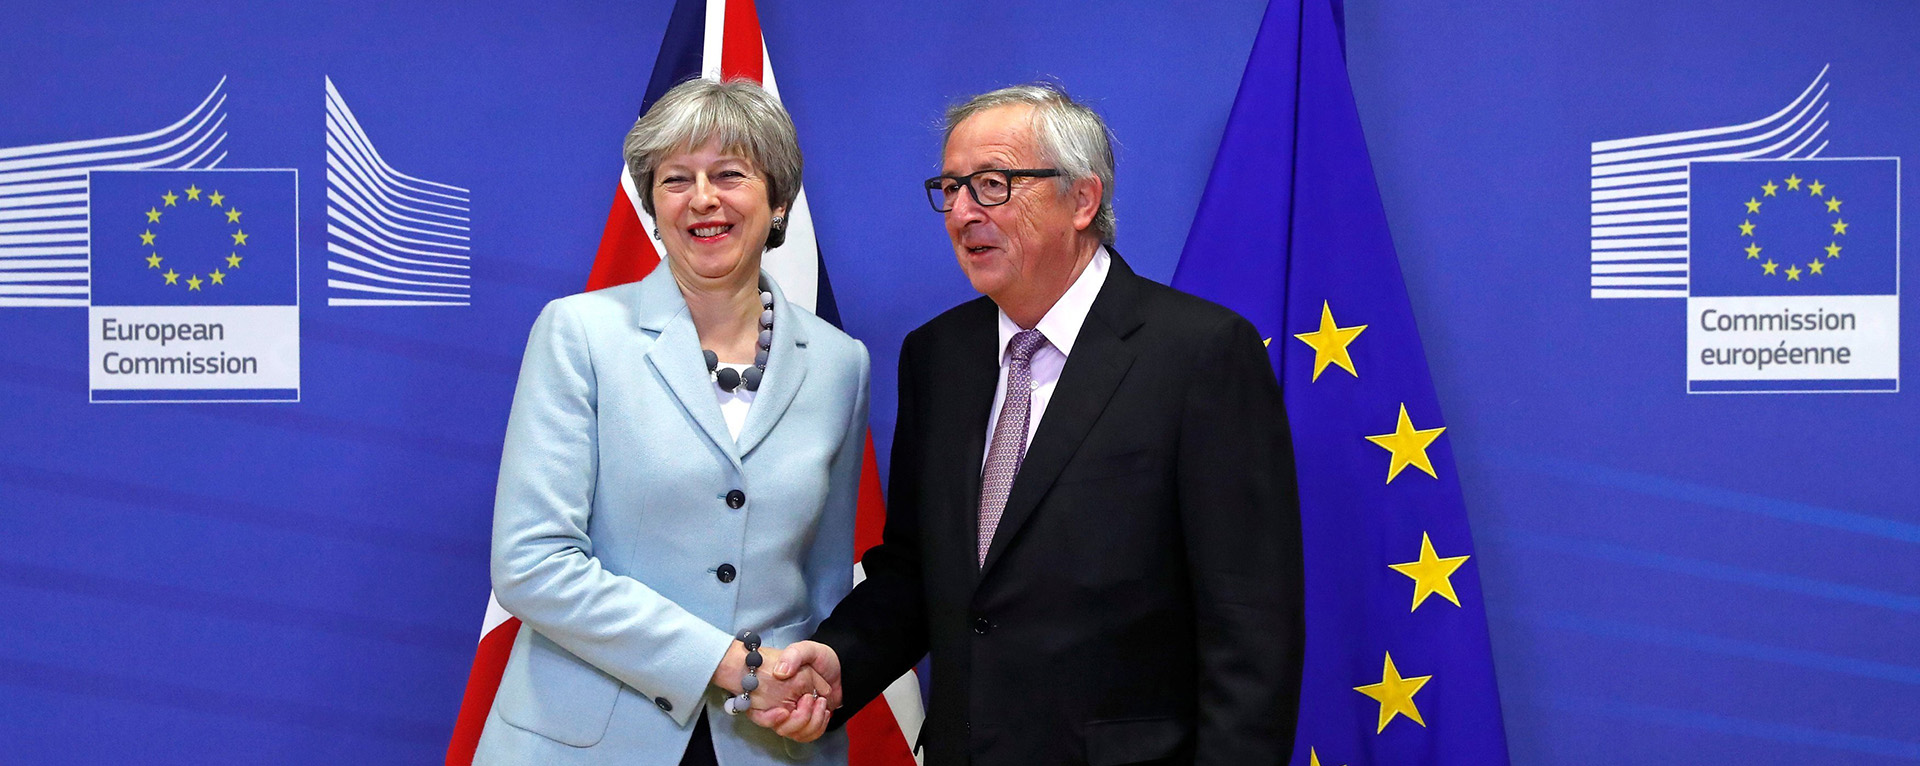 Opportunities for Europe after Brexit